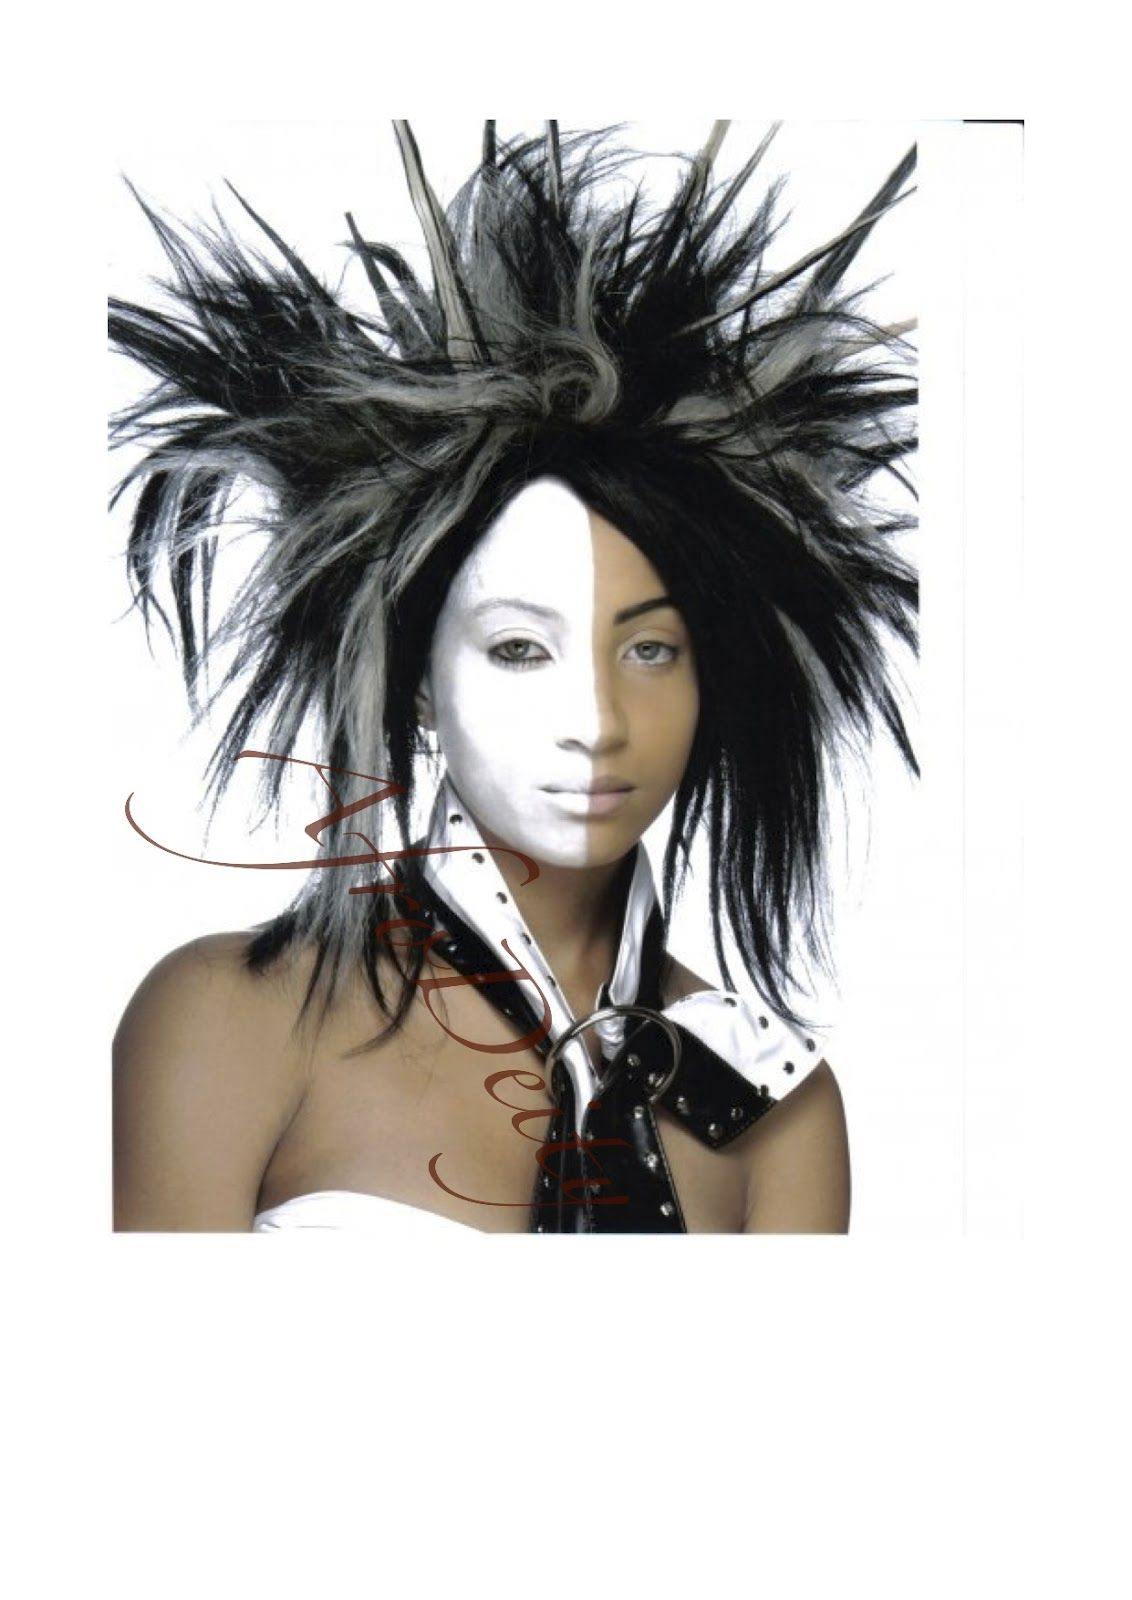 our resident model nik in her modelling days. http://store.afrodeity